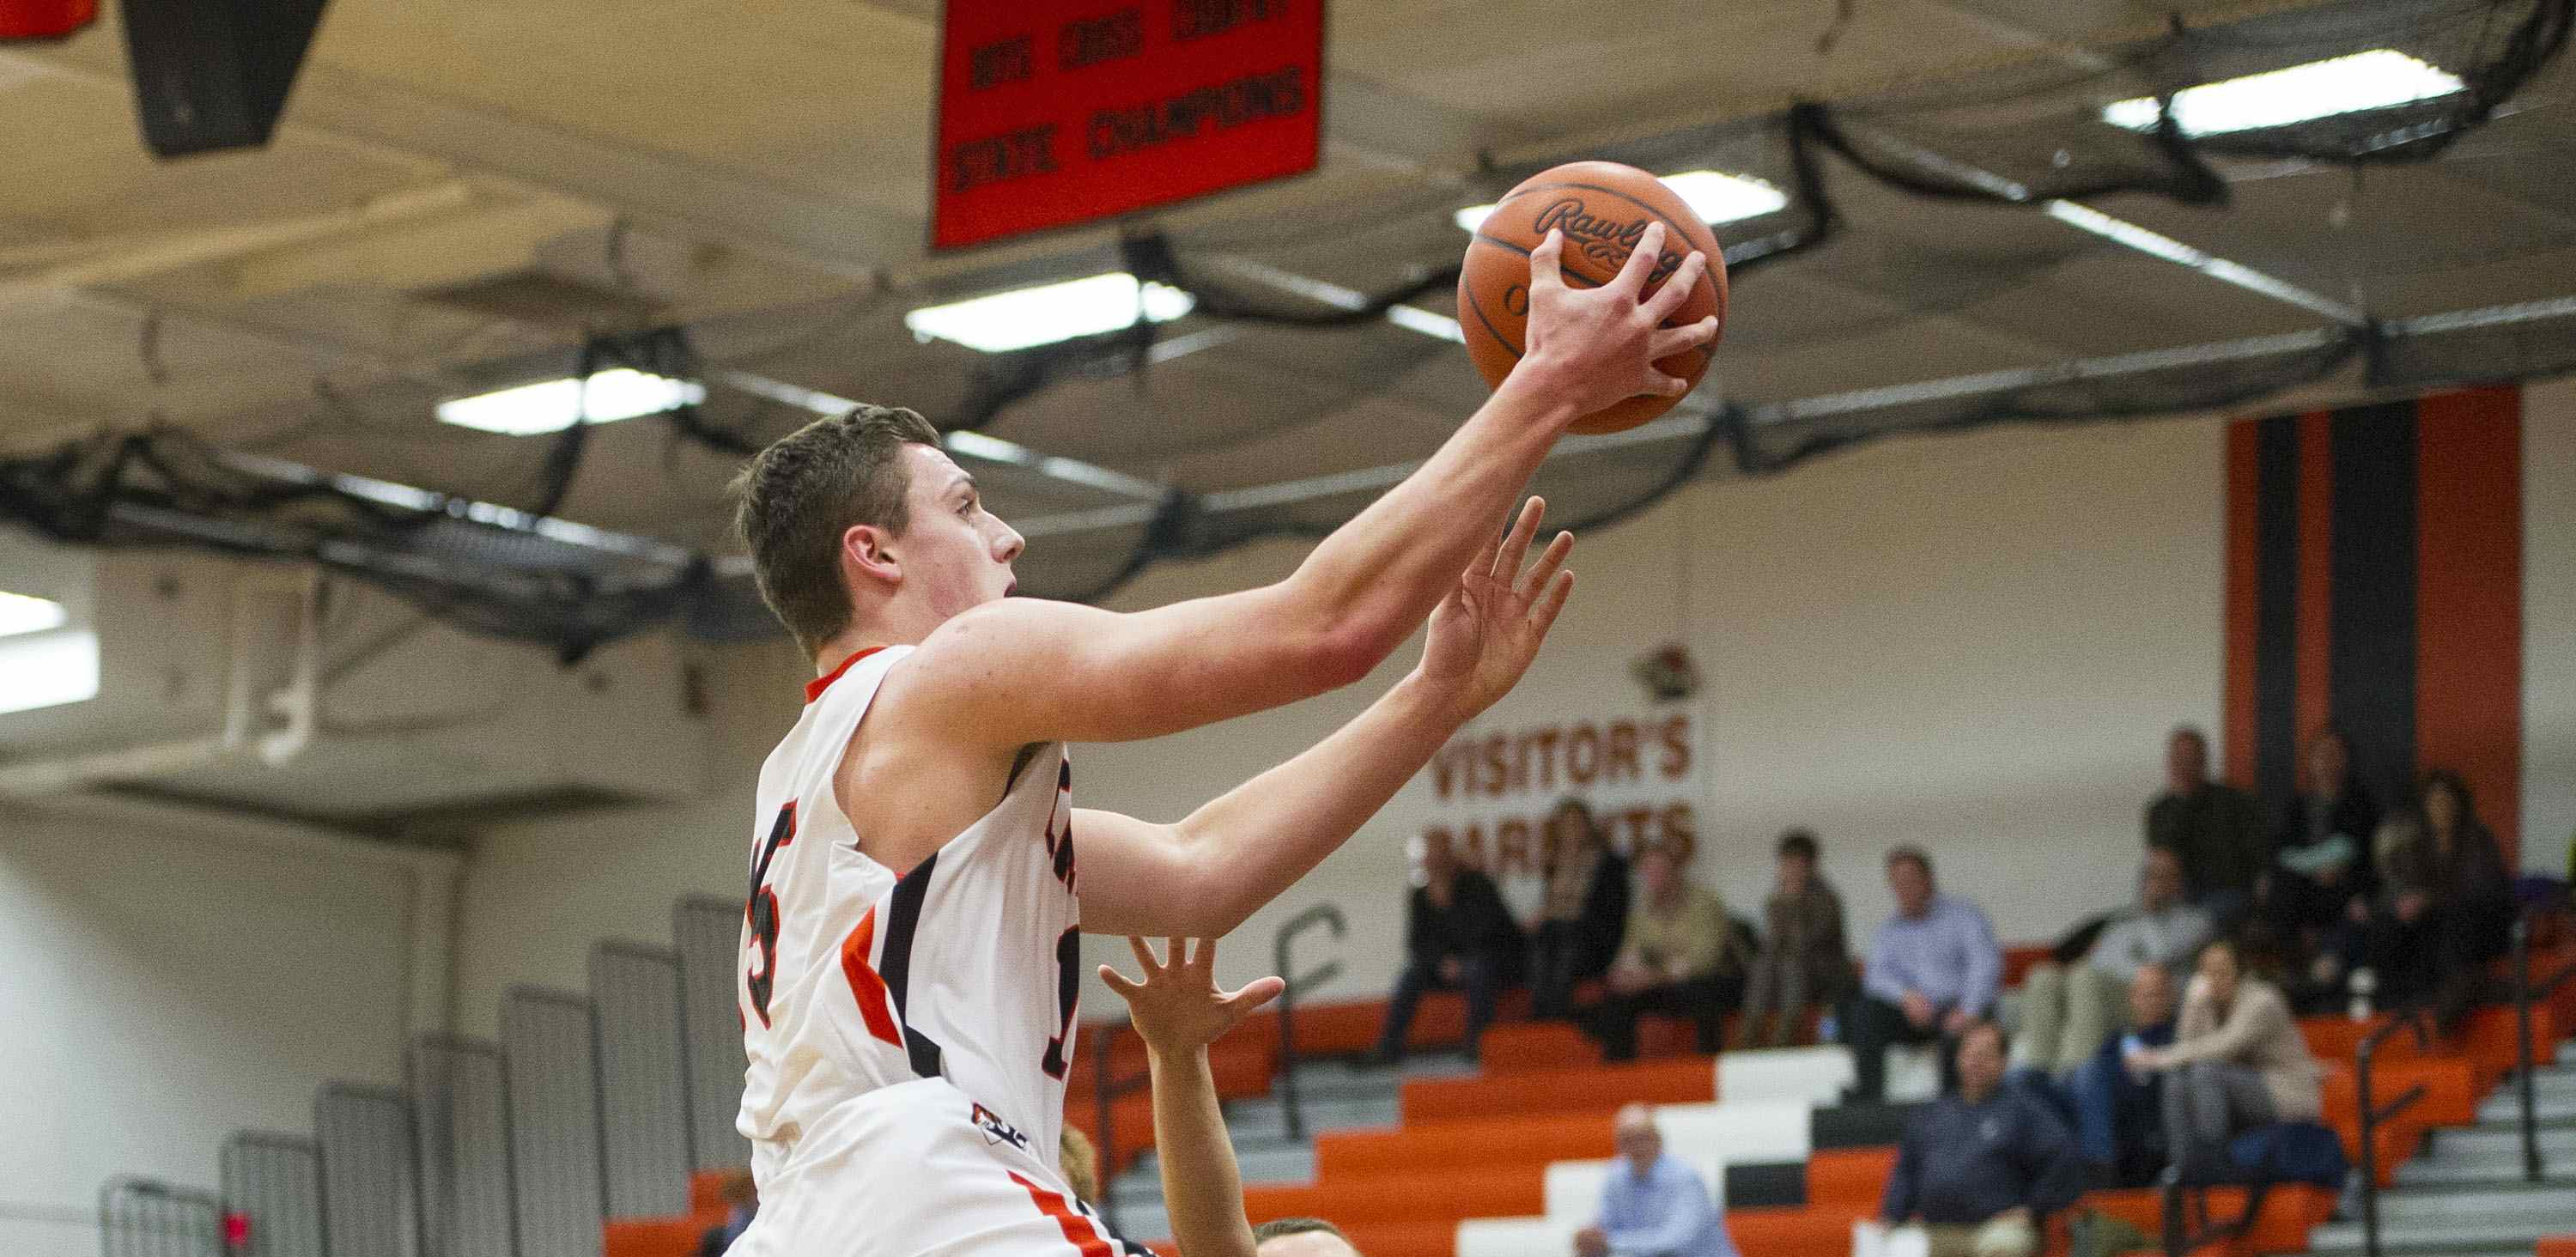 Chagrin Thumps Rival